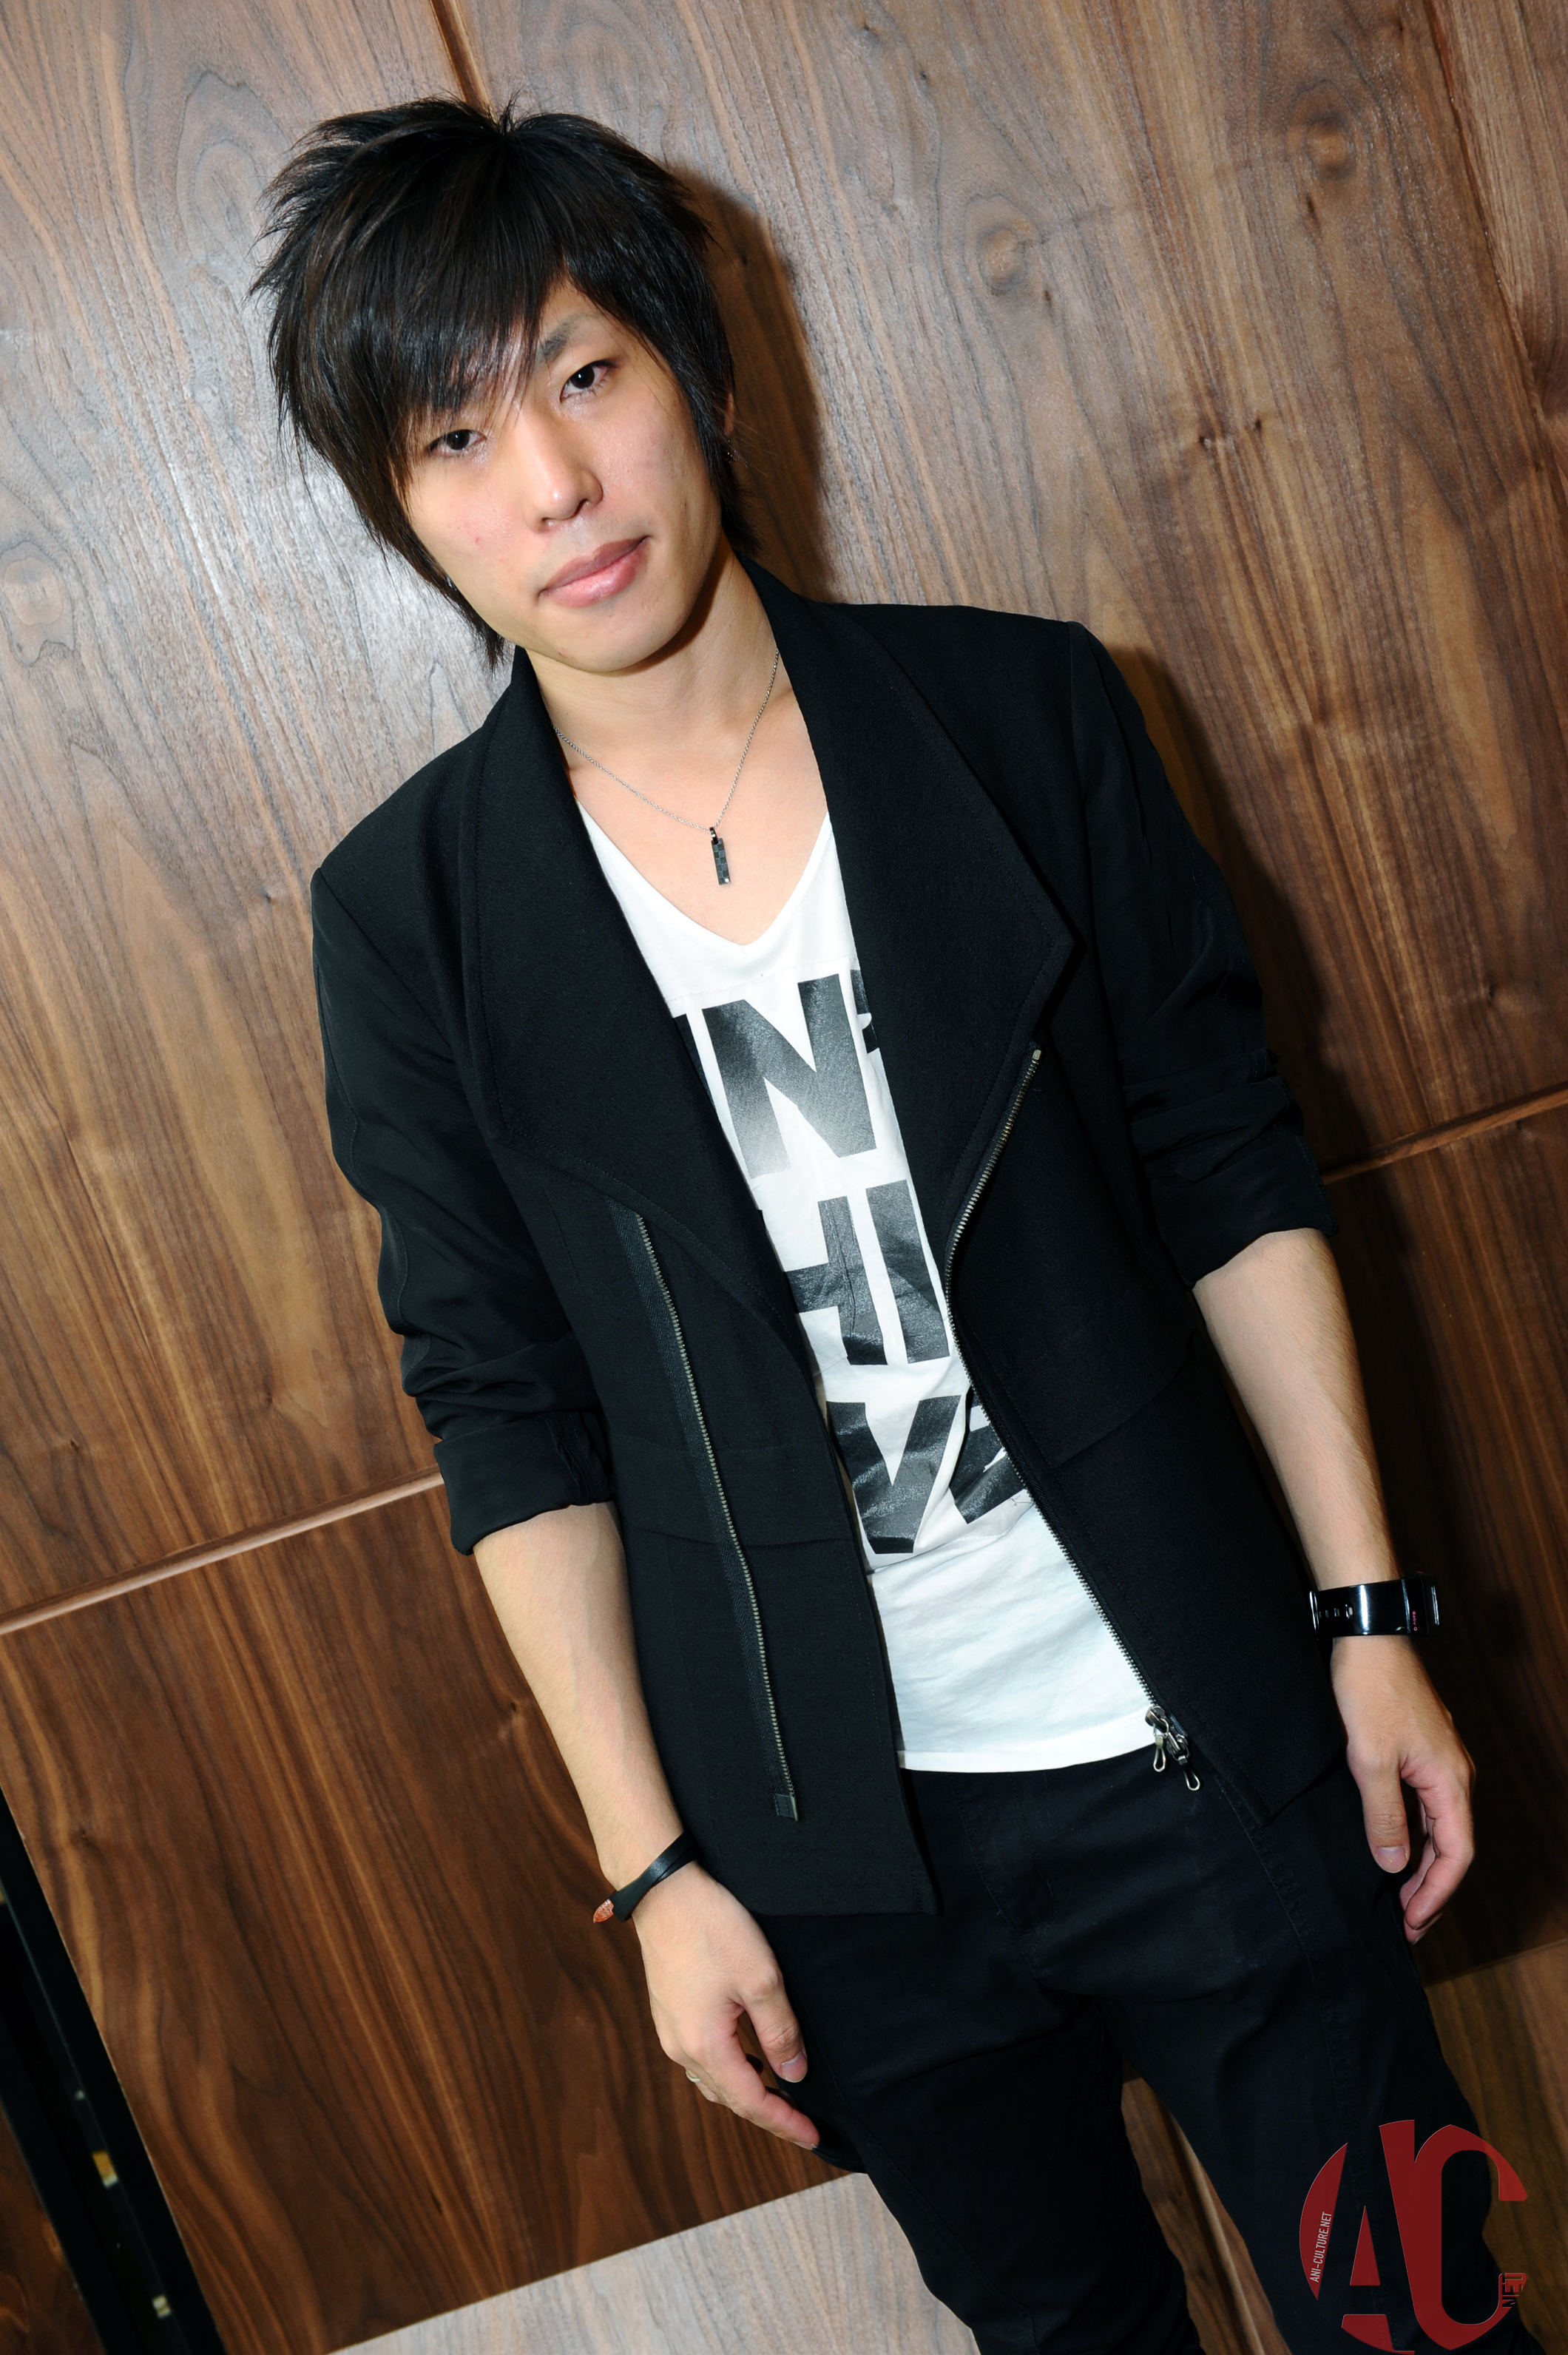 AFA SG 2013: Interview with Hachioji P (八王子P)